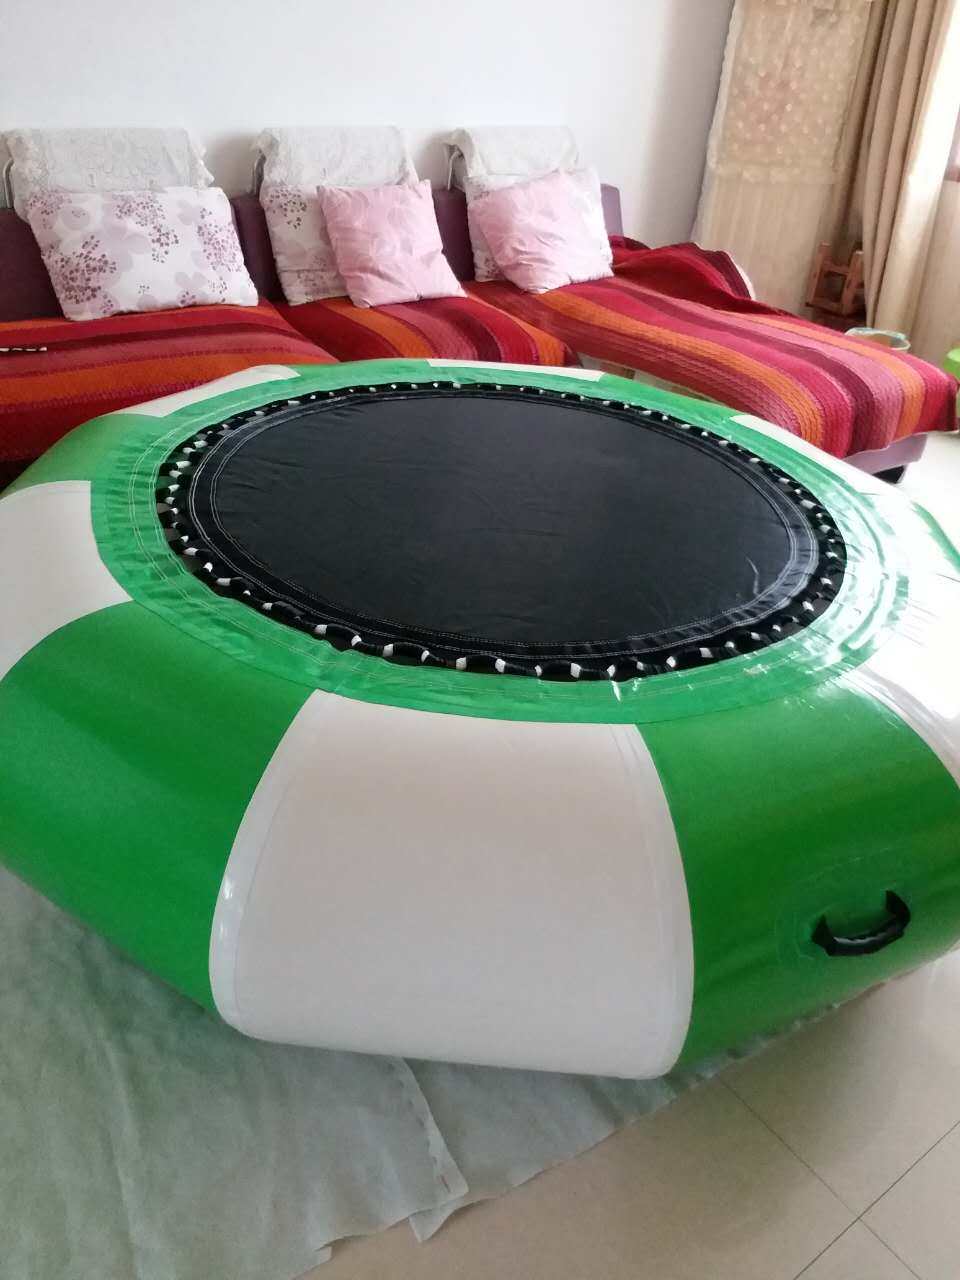 Inflatable Trampoline With Slide Inflatable Trampoline Inflatable Water Toys For Chinldren And Adults In The Yard And The Water купить недорого в Москве